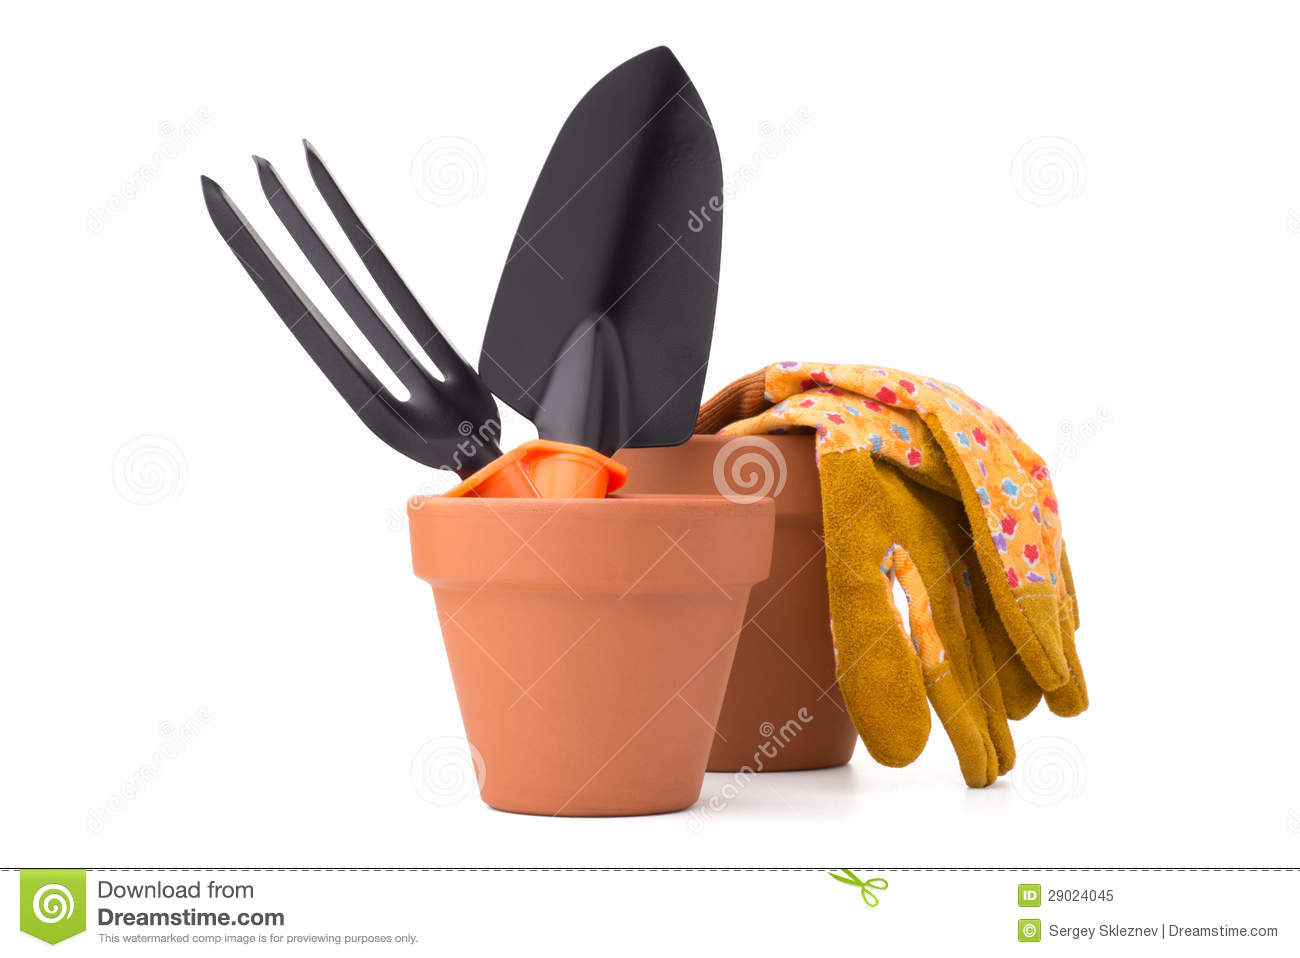 Gardening tools and accessories royalty free stock photo for Gardening tools and accessories